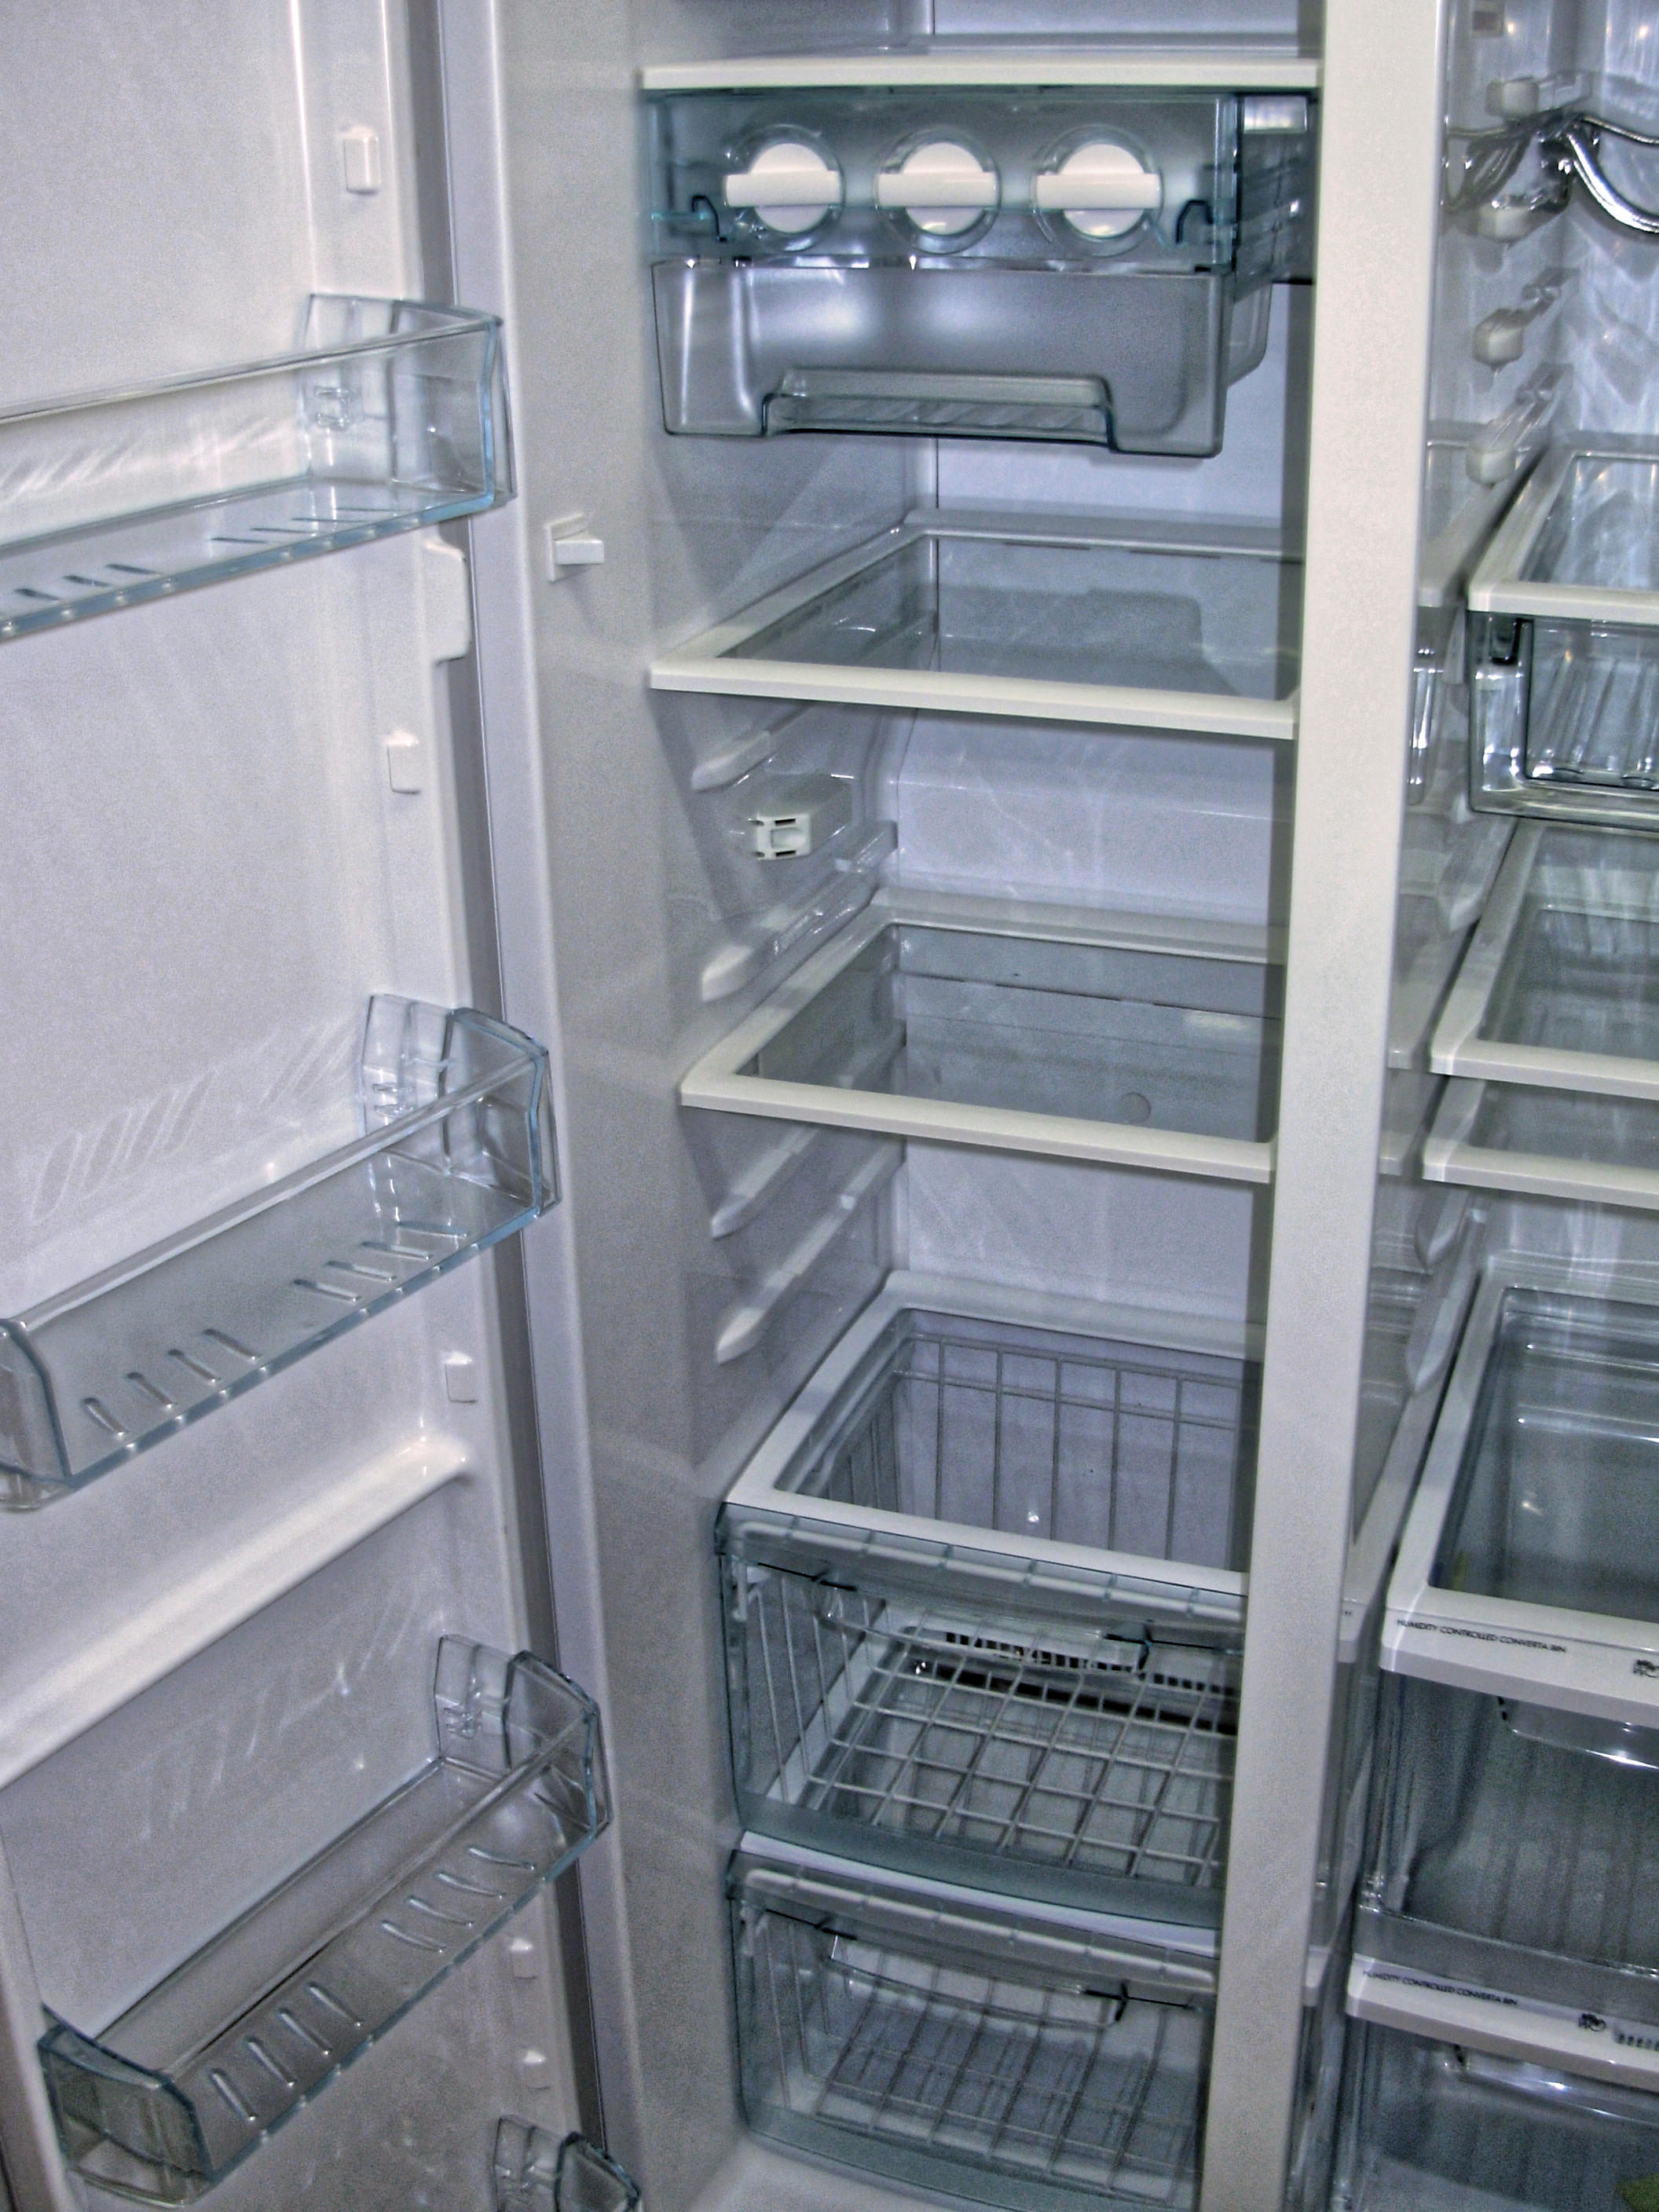 This should be Fridge-3.jpeg.  Is it missing?